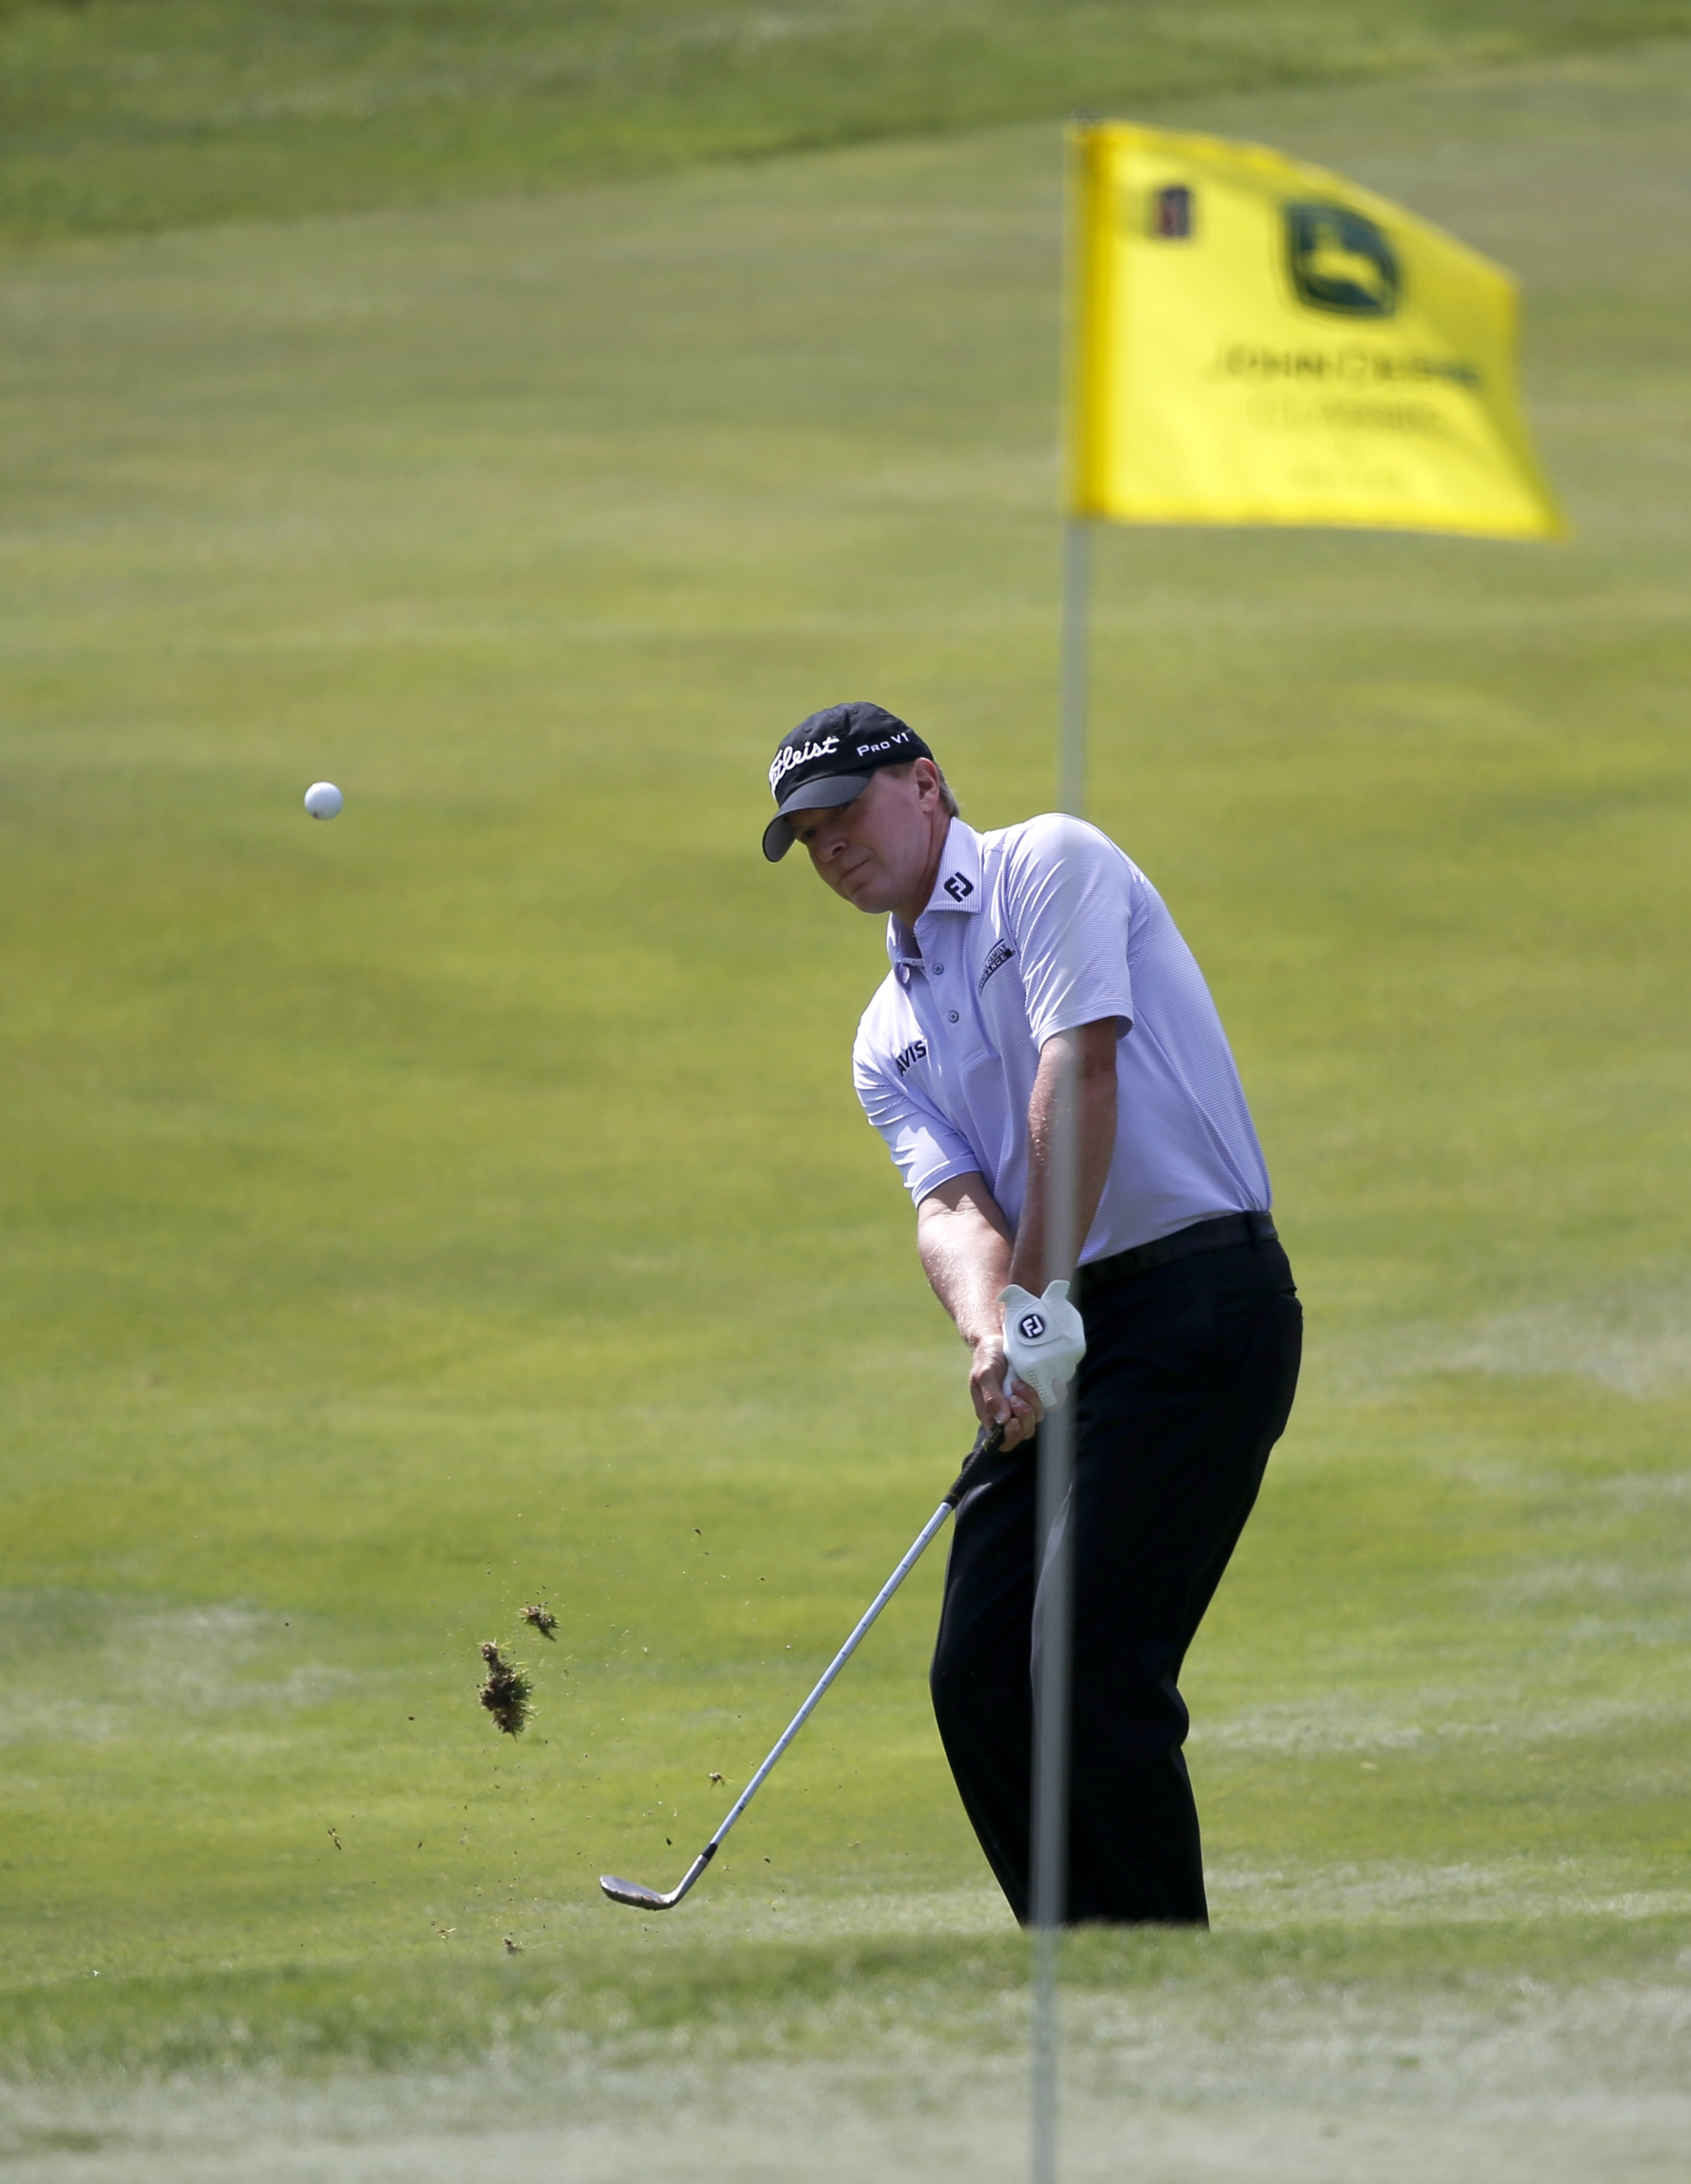 Golfer Steve Stricker chips onto the 17th green during the first round of the John Deere Classic golf tournament Thursday, July 9, 2015, in Silvis , Ill. (AP Photo/Charles Rex Arbogast)